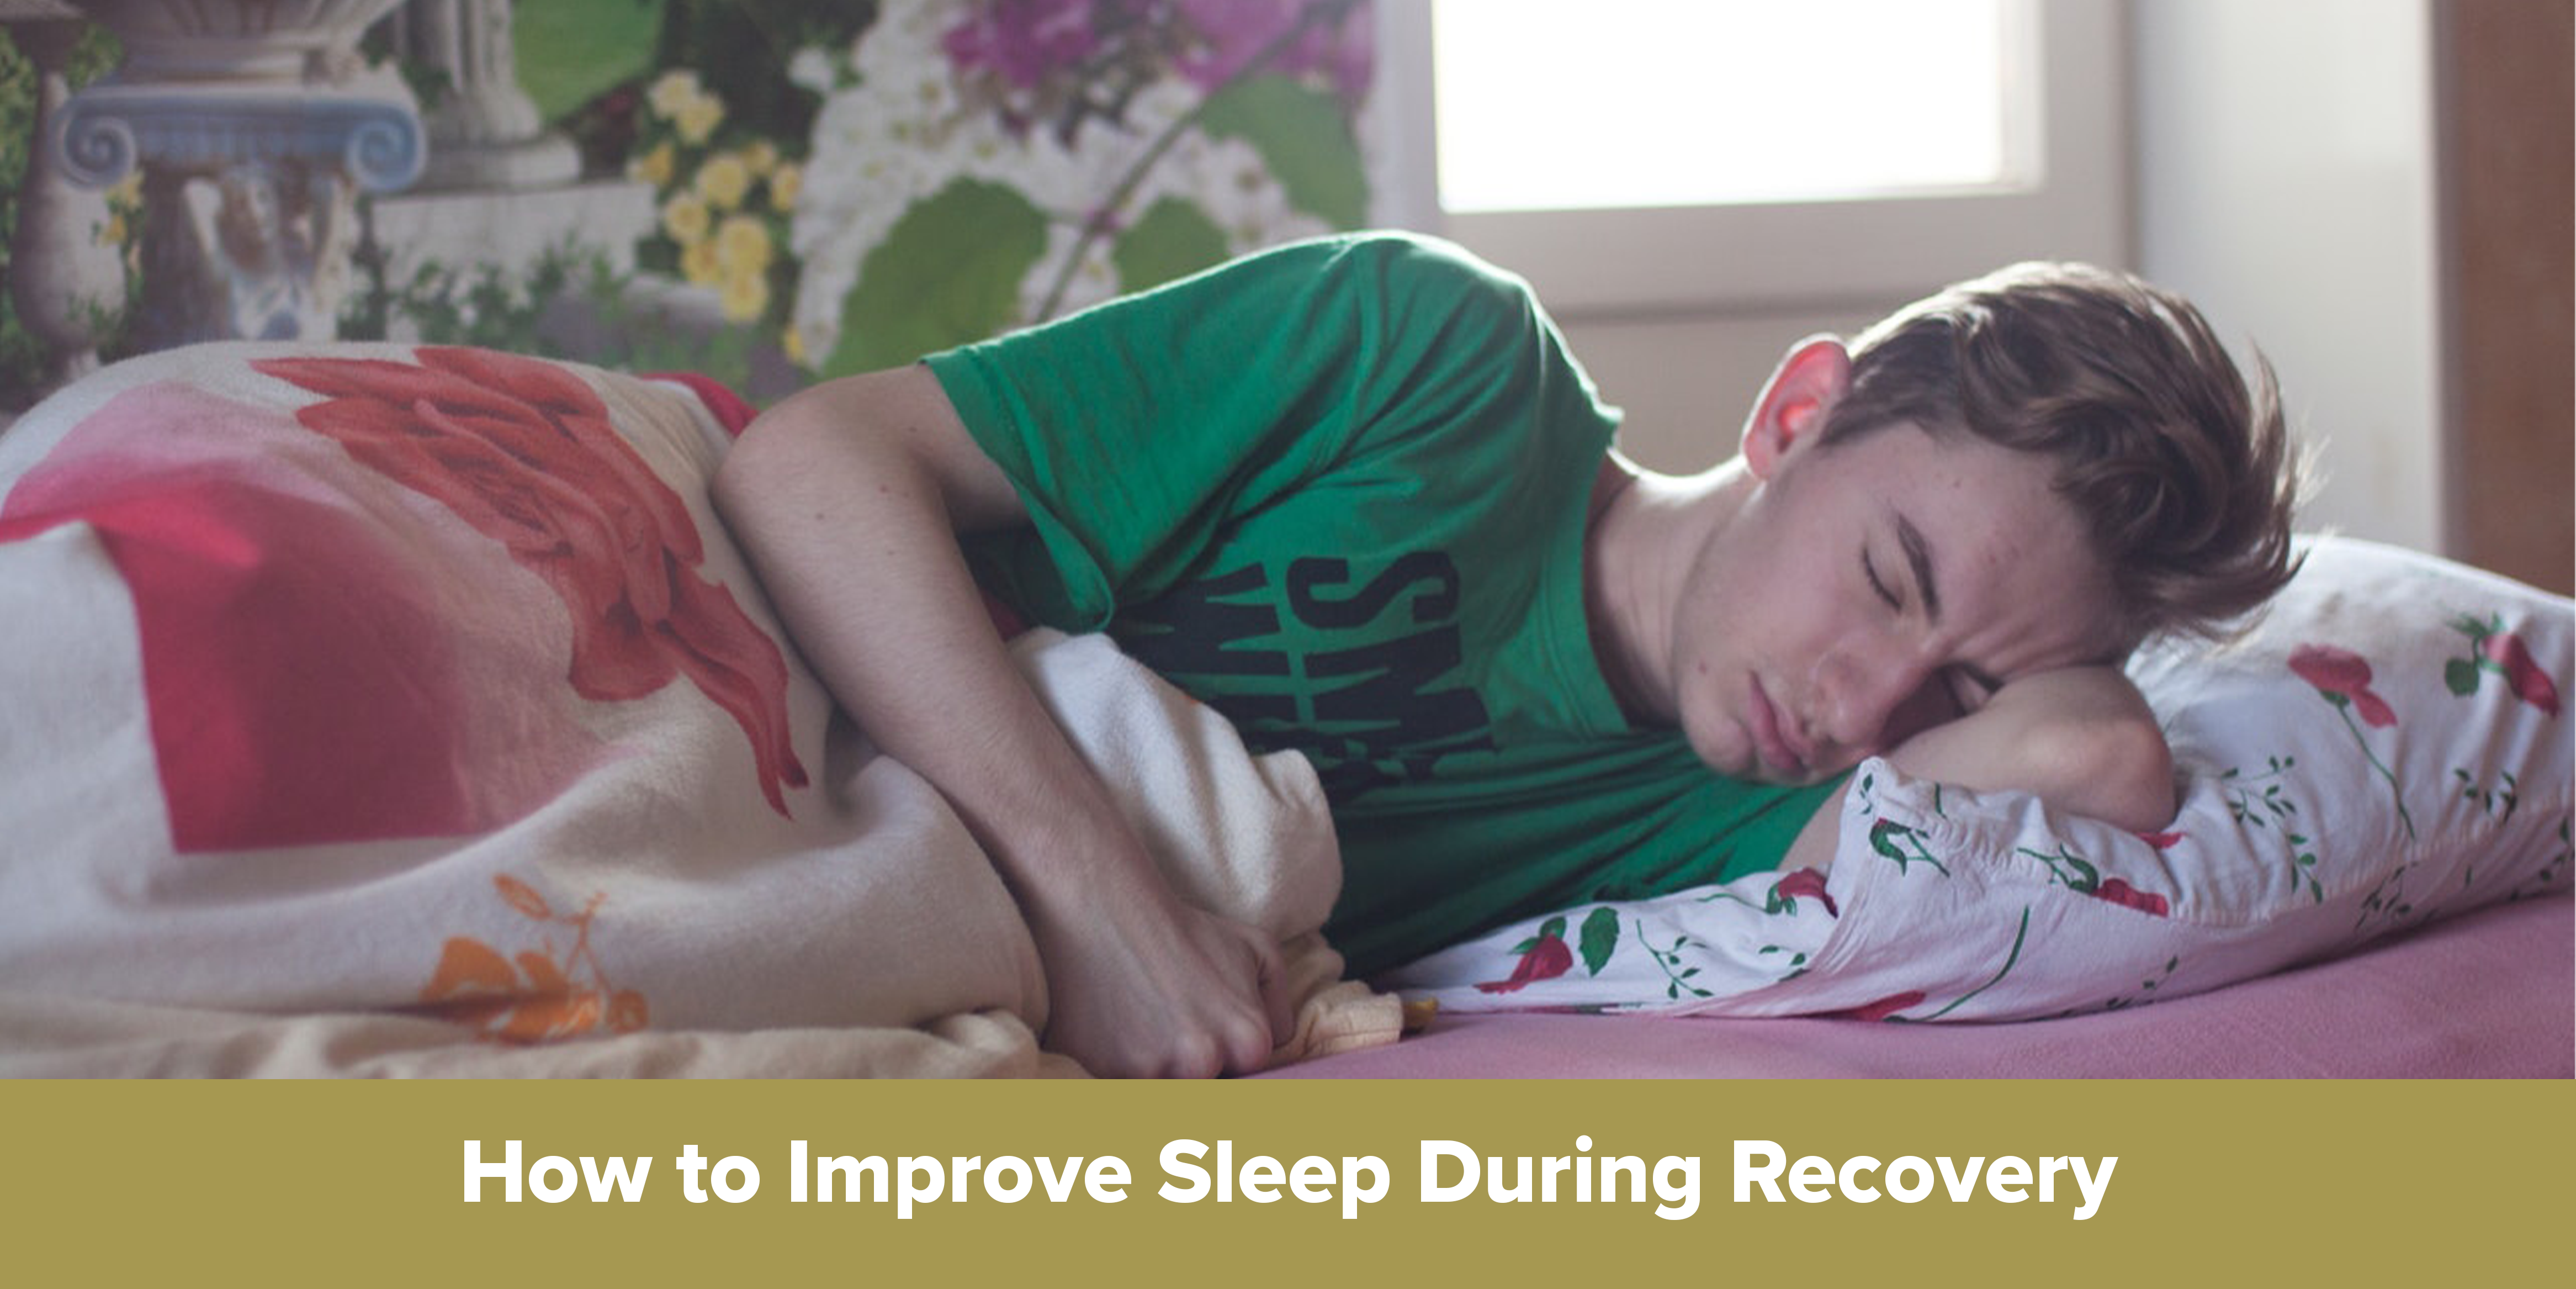 How to Improve Sleep During Recovery